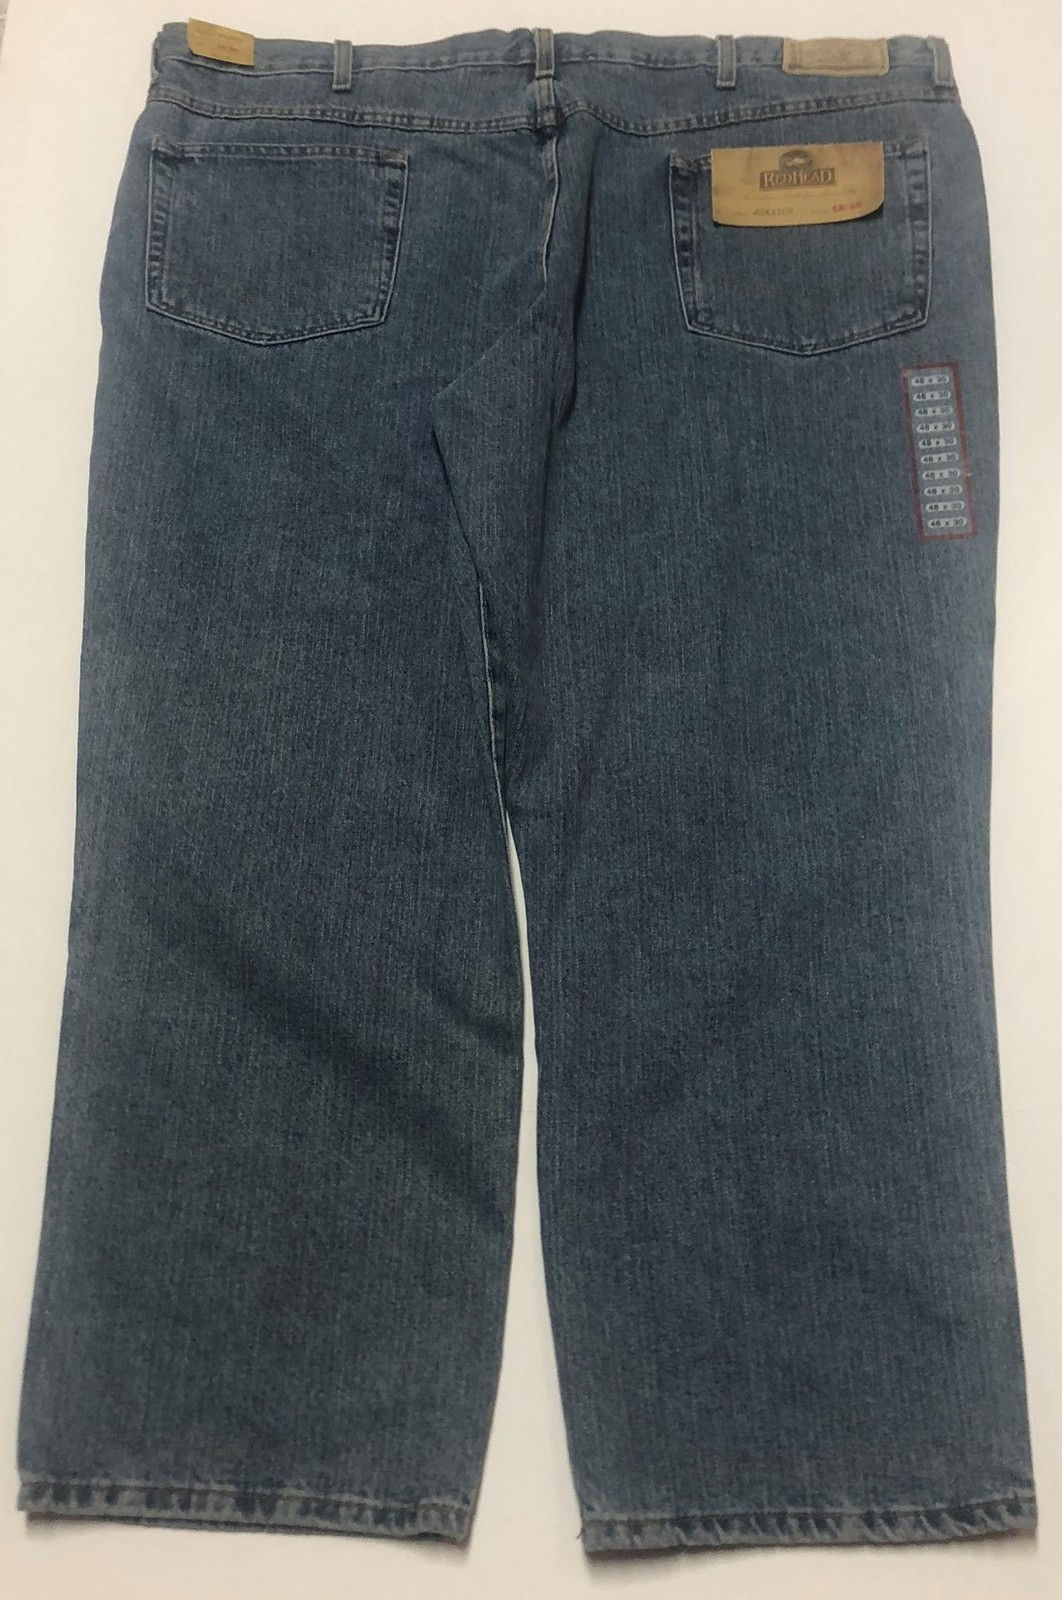 Red Head Relaxed Men's Blue Jeans Sz 48/30 Medium Stone Wash image 7